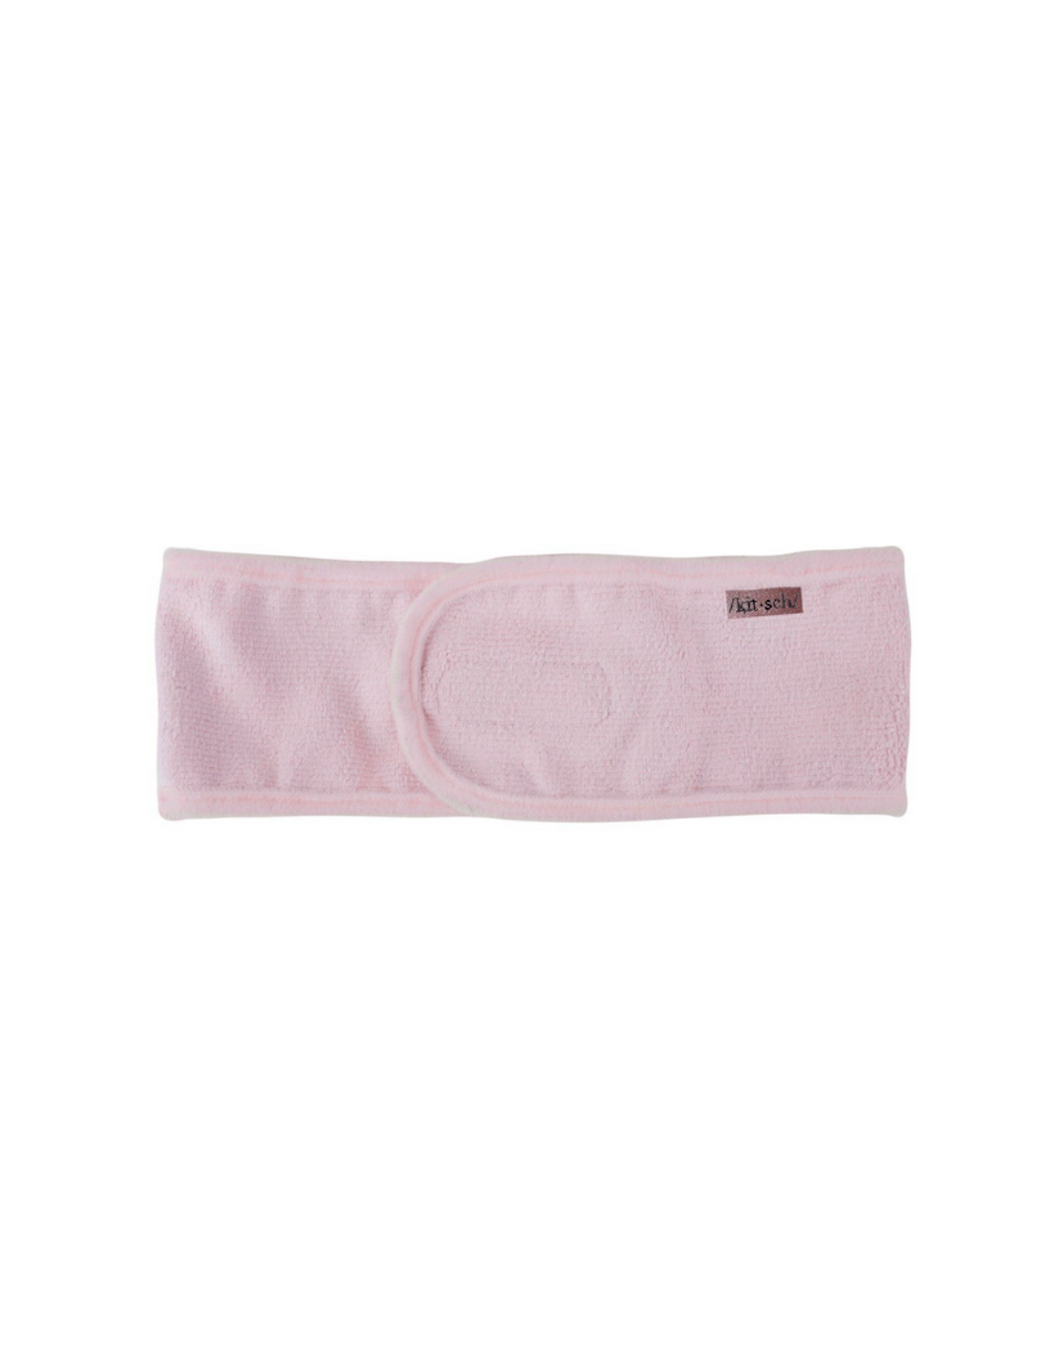 KIT-SCH - Blush Microfiber Headband